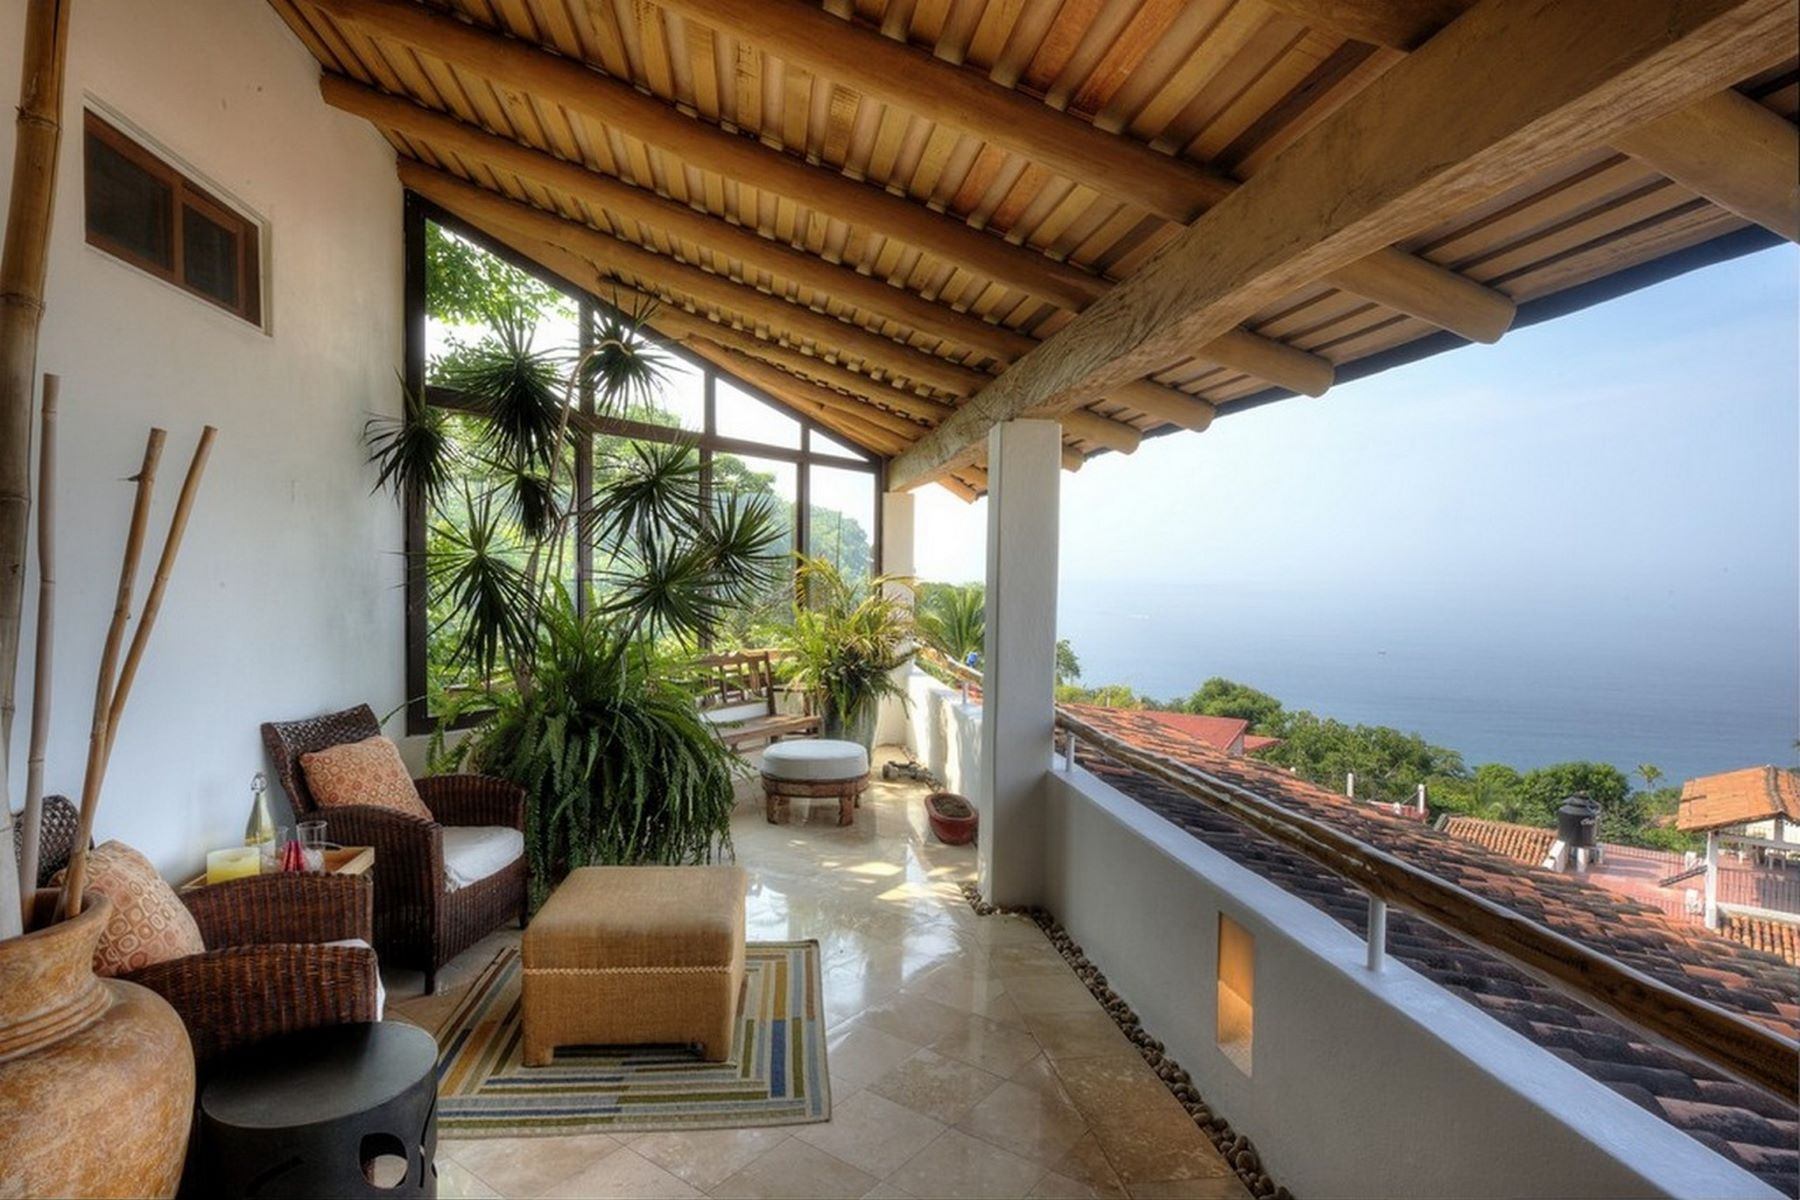 Condominium for Sale at Montemar 8 Paseo de los Delfines 136 DP 8 Puerto Vallarta, Jalisco 48399 Mexico